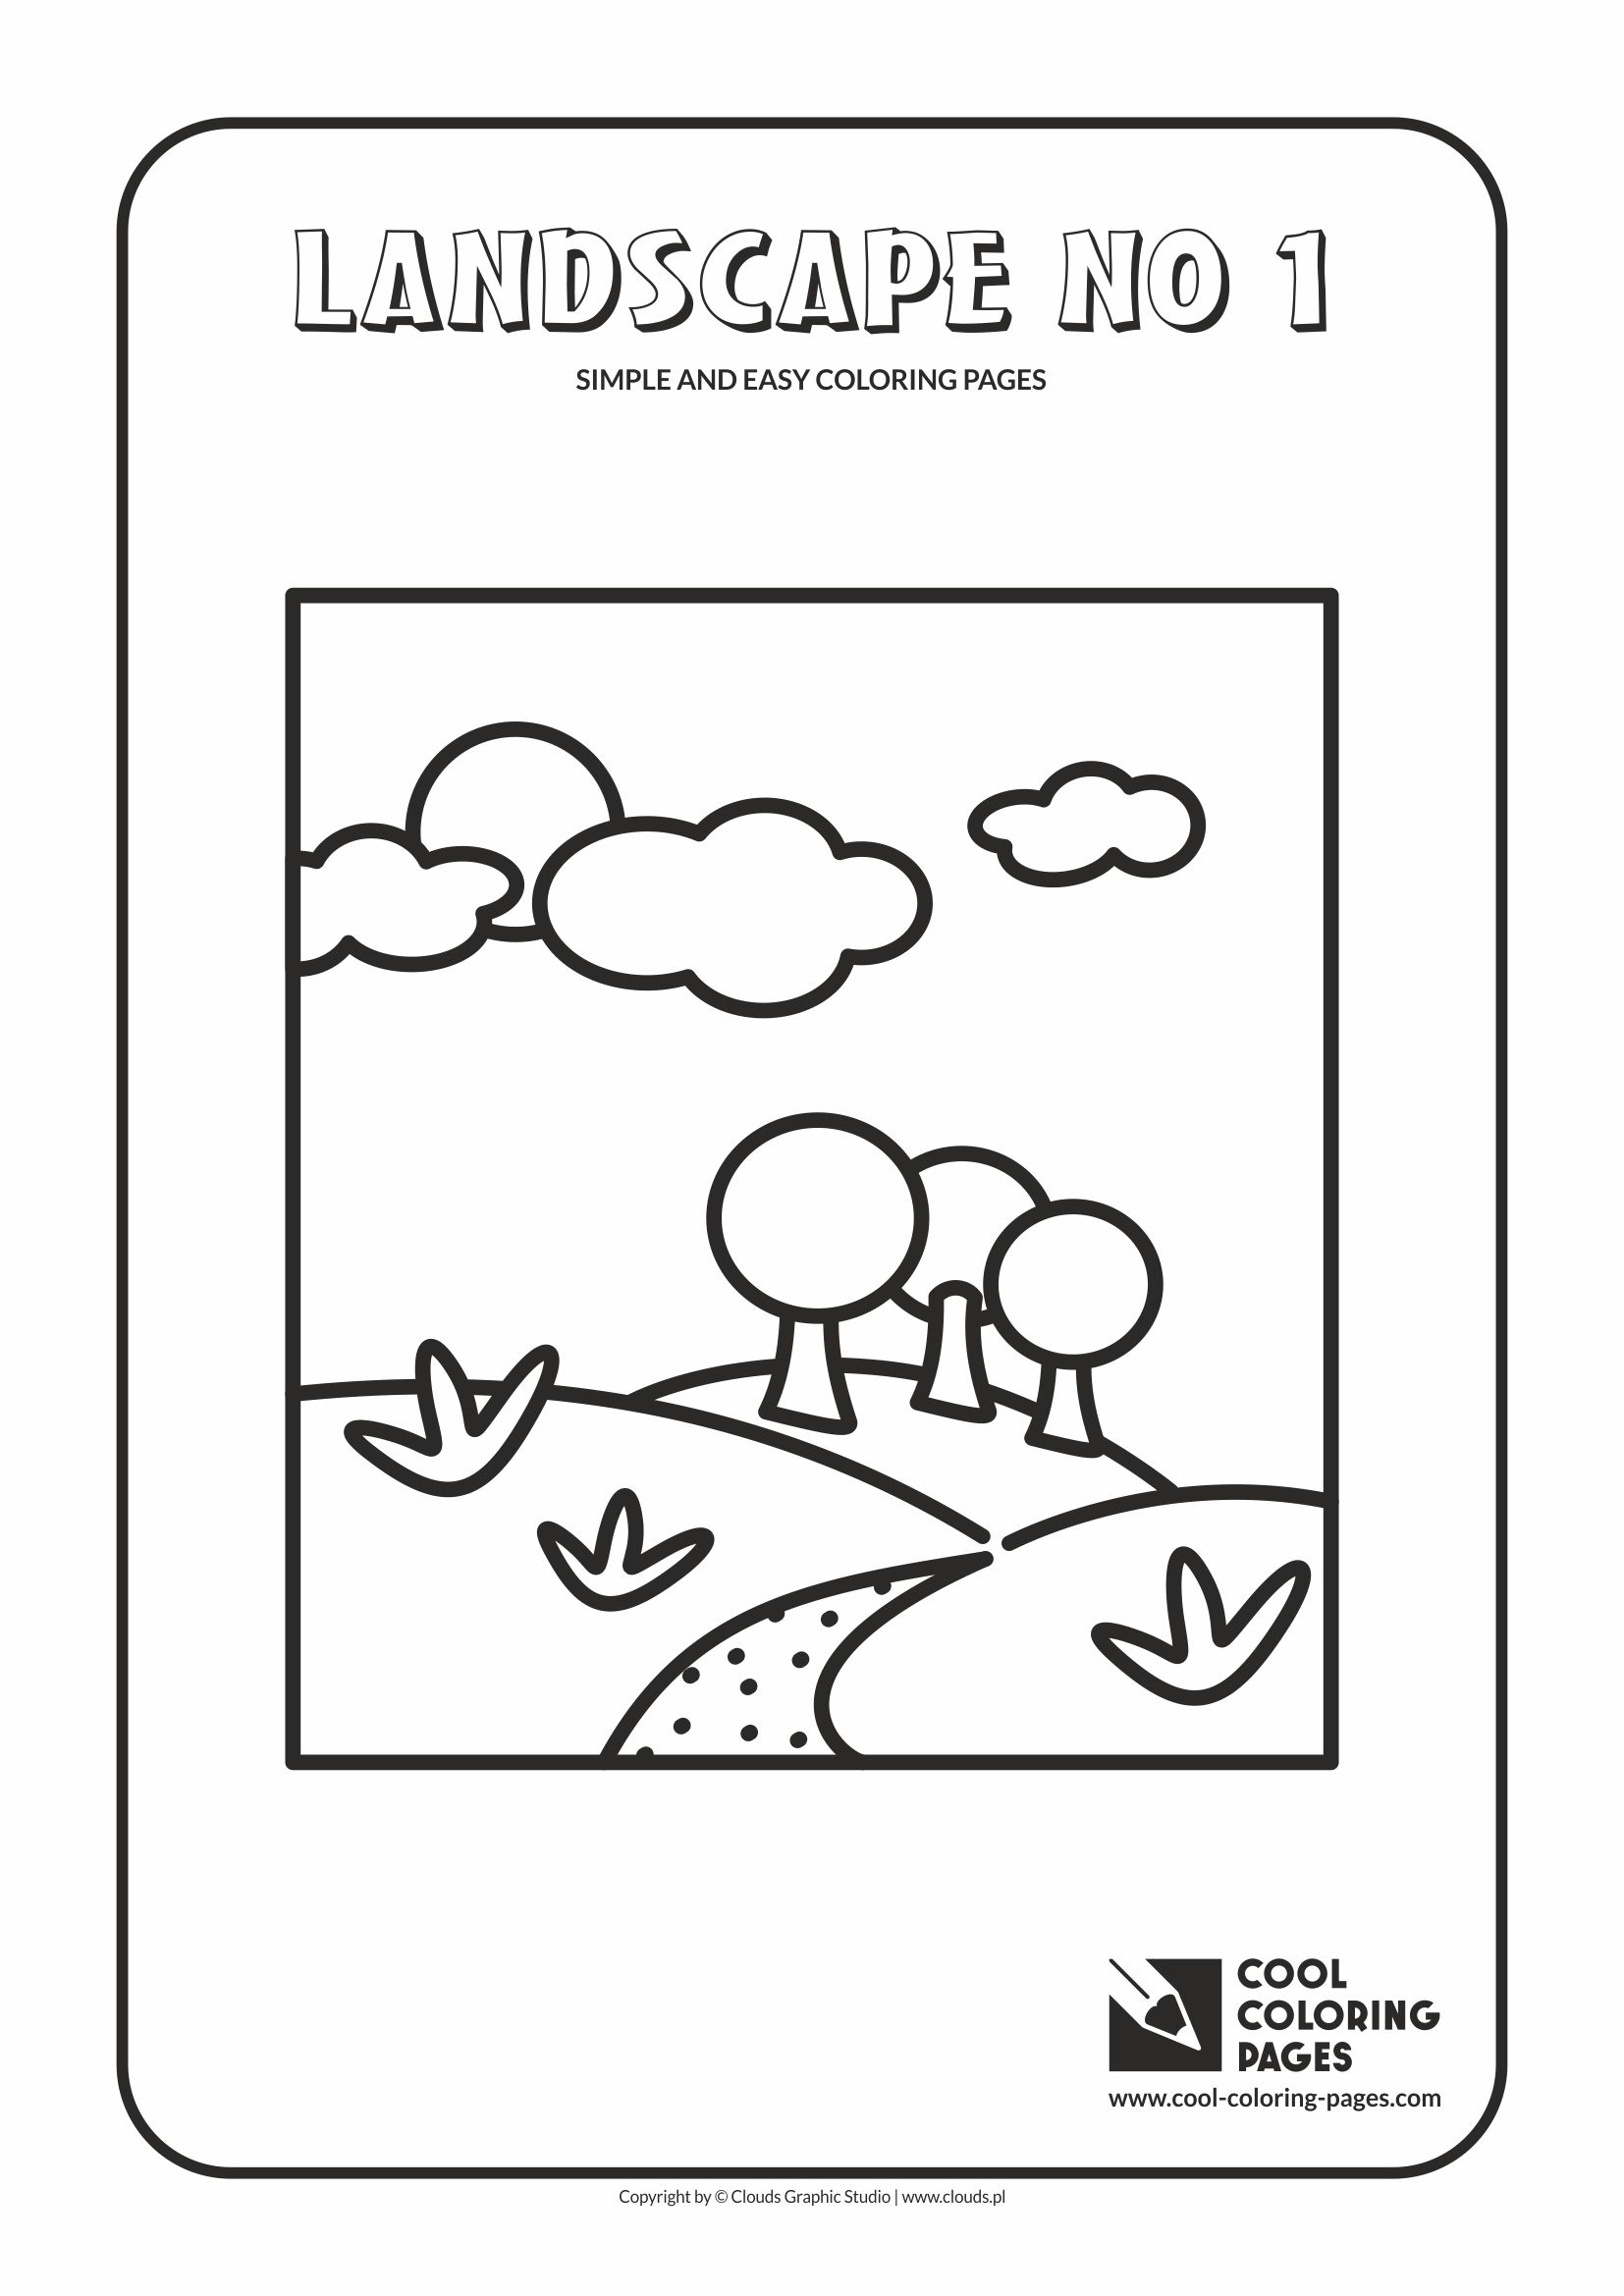 Simple and easy coloring pages for toddlers - Landscape no 1